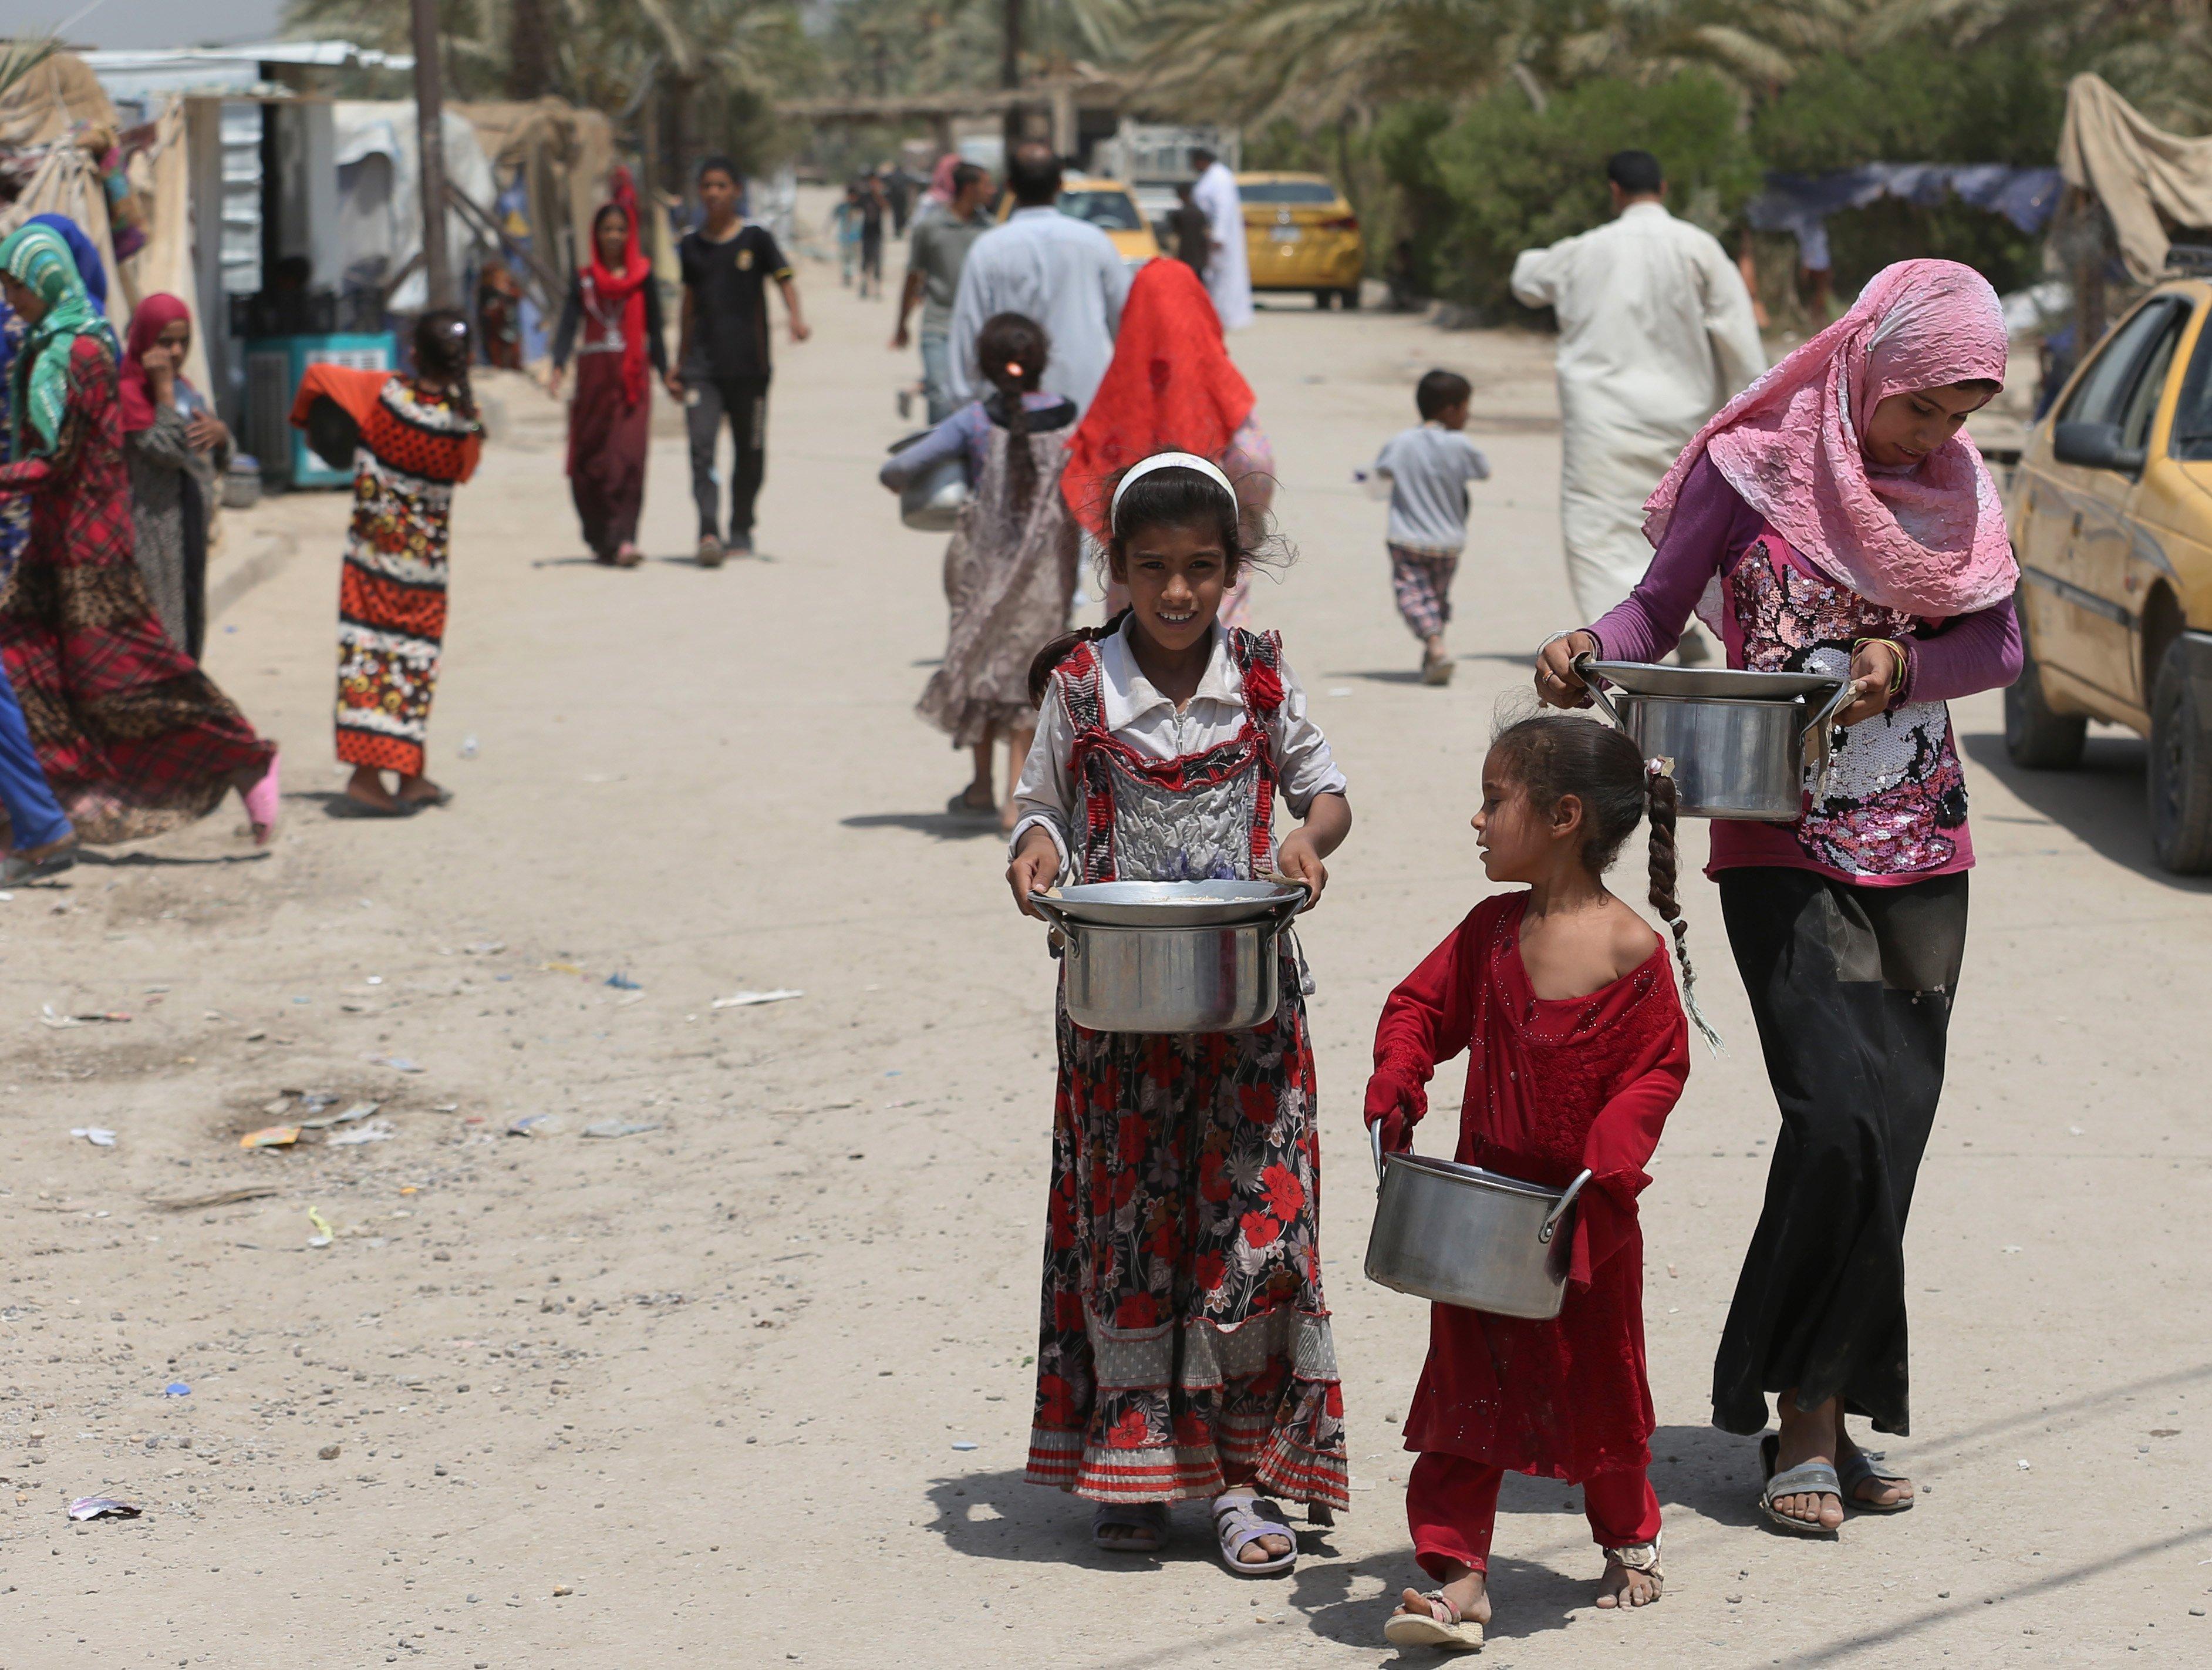 Displaced Iraqis carry donated food at al-Takia refugee camp in Baghdad on July 30, 2015.